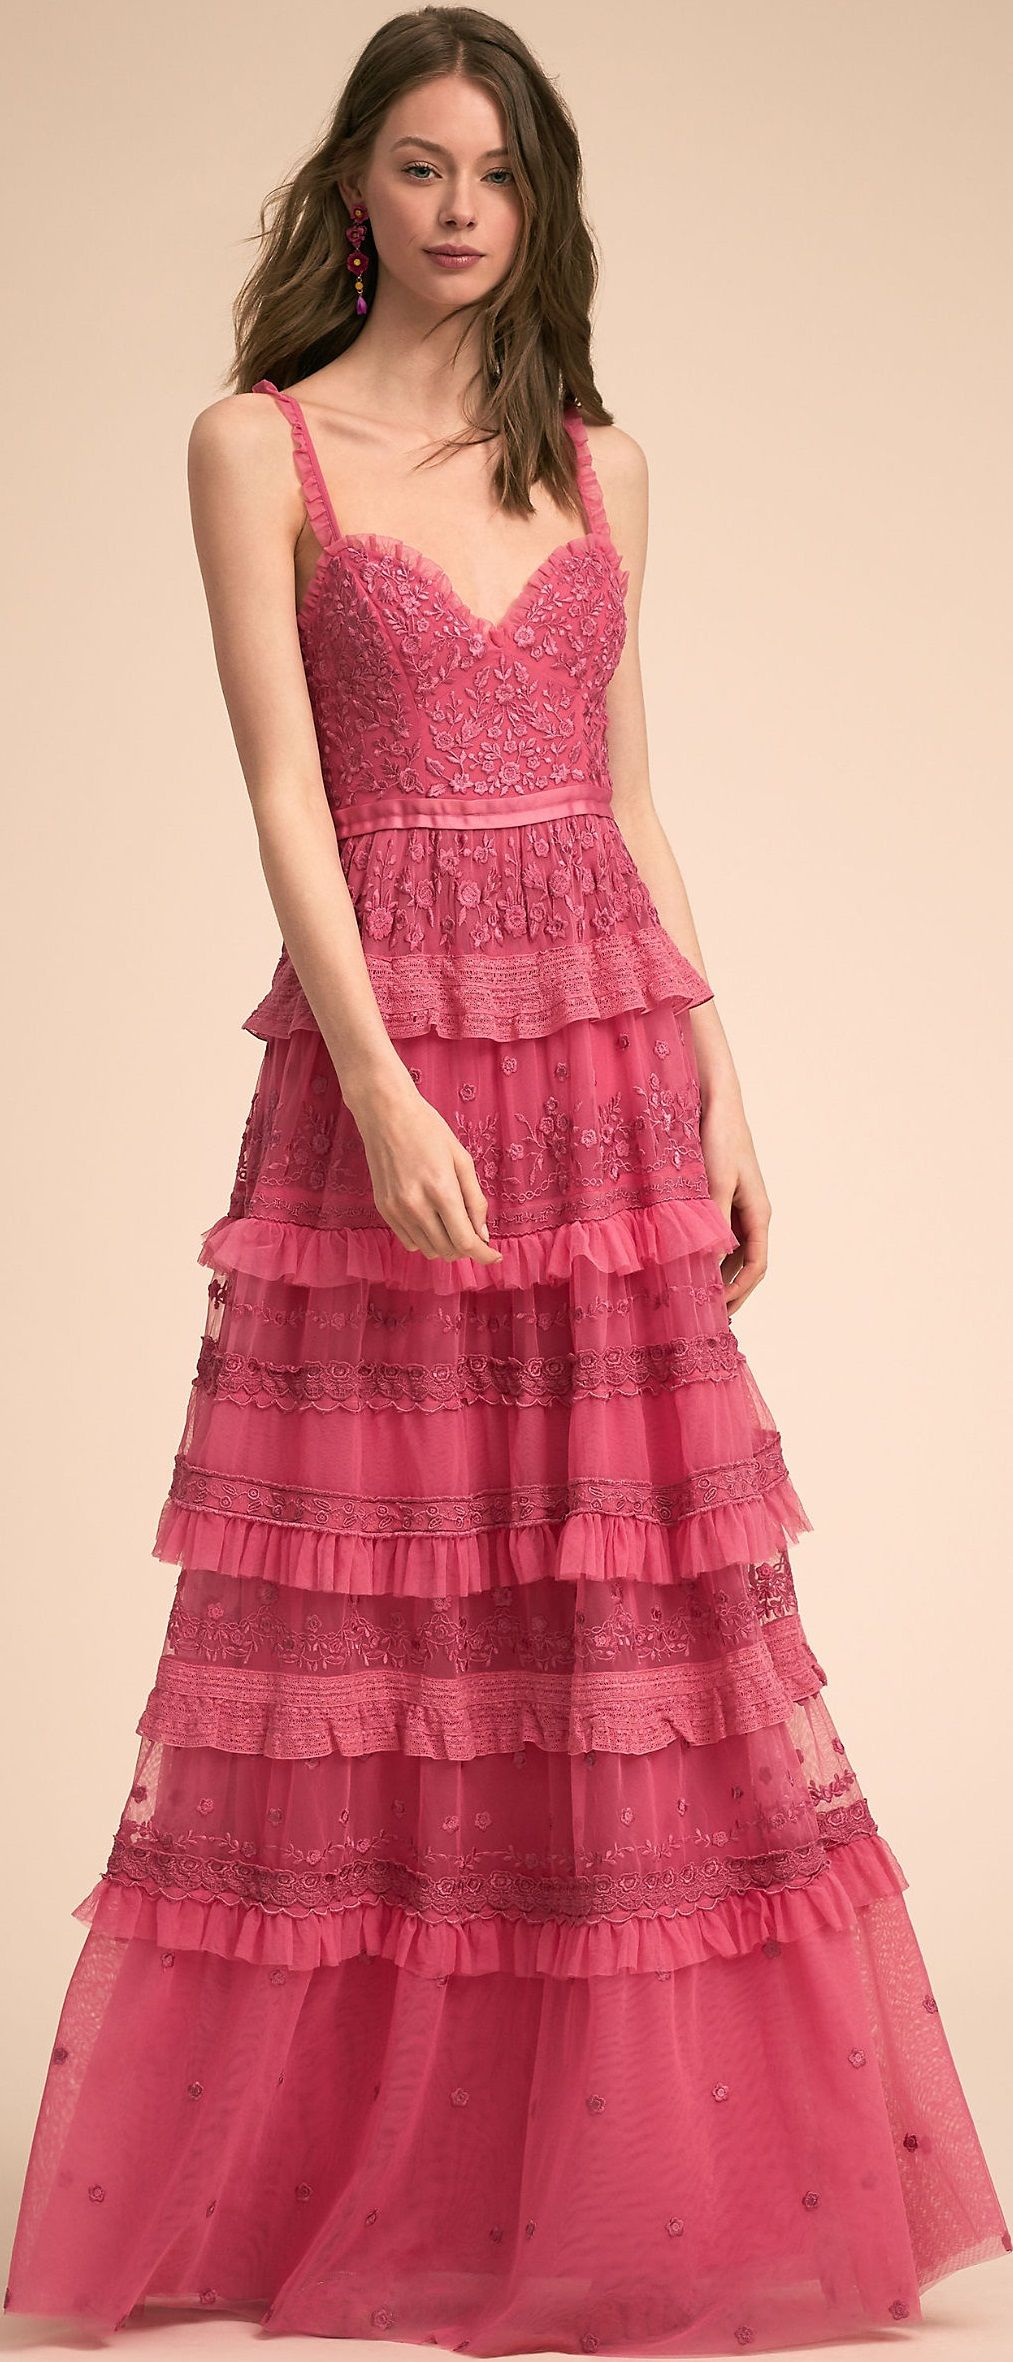 Bhldn Occ\' Coll\' \'18. | DRESSES | Pinterest | Gowns, Marchesa and ...